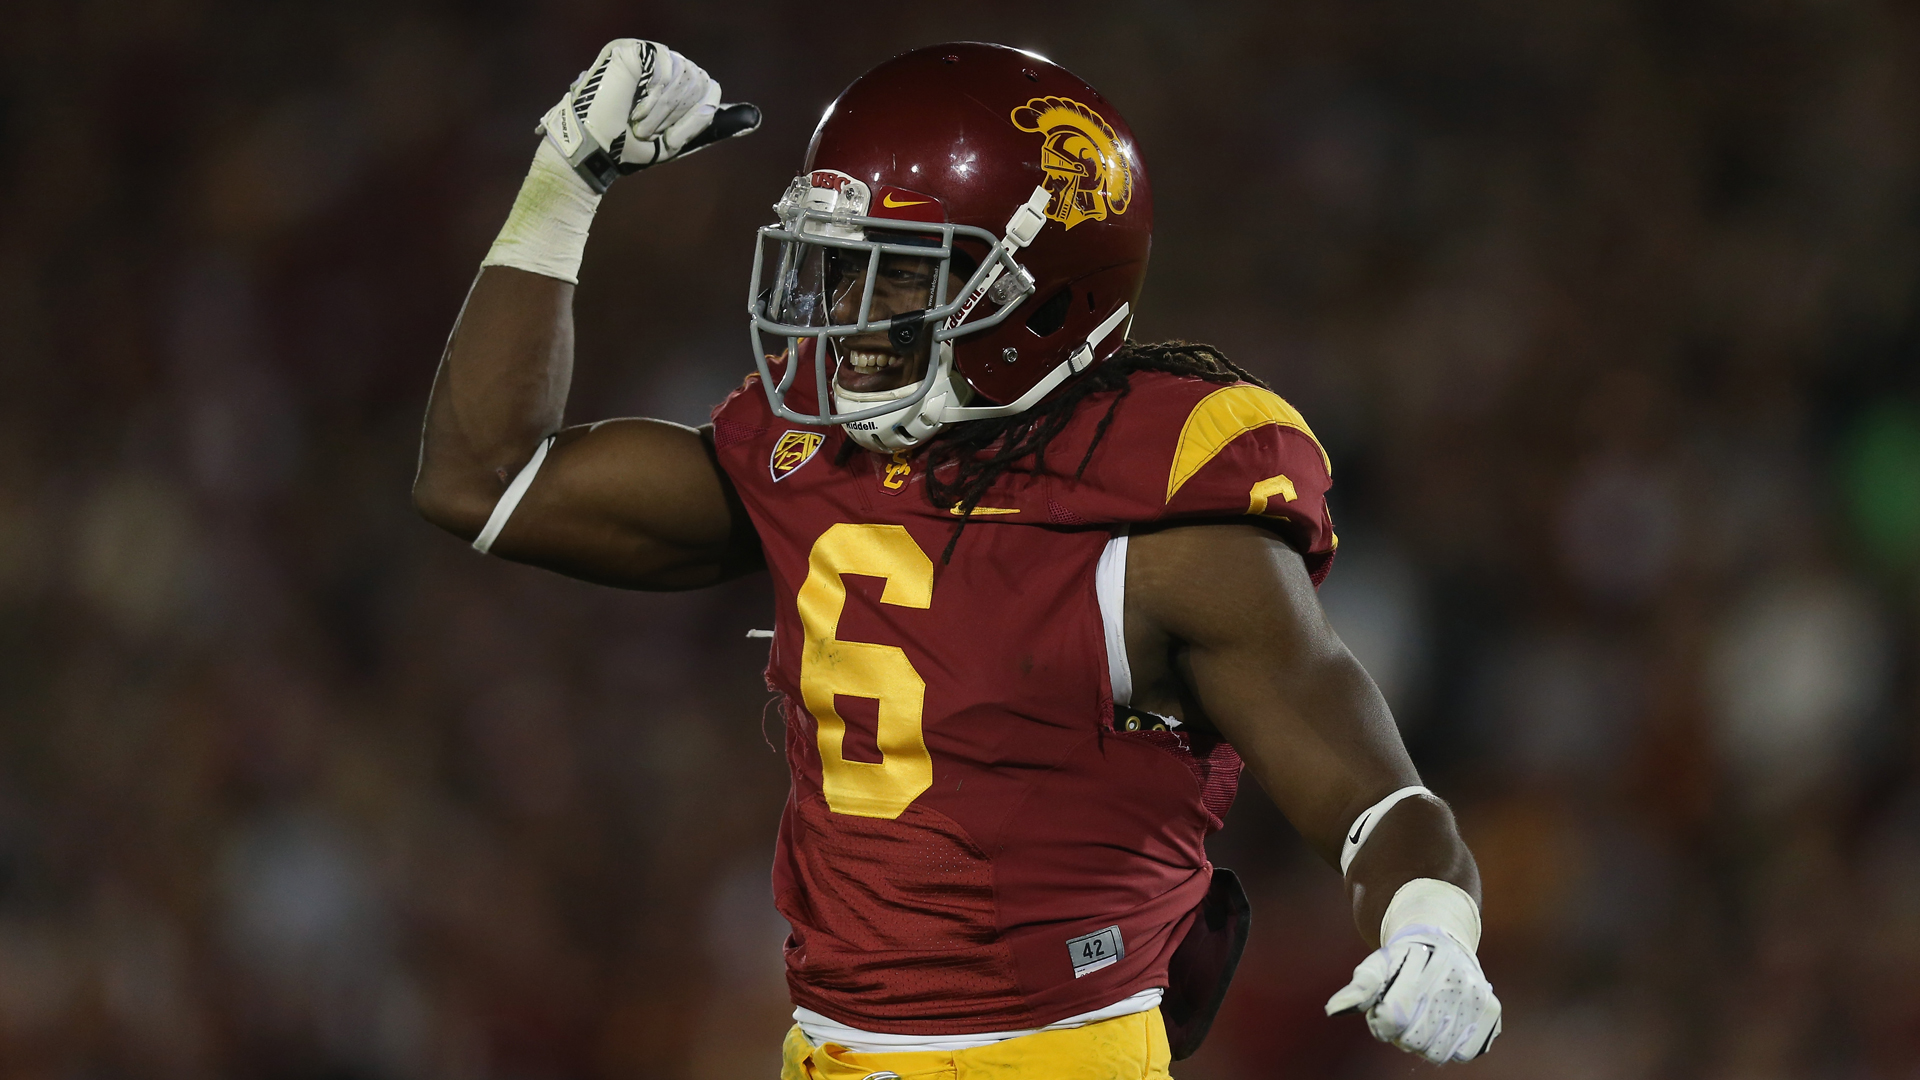 Safety Josh Shaw of the USC Trojans celebrates against the Stanford Cardinal at Los Angeles Coliseum on Saturday, Nov. 16, 2013. (Credit: Jeff Gross/Getty Images)